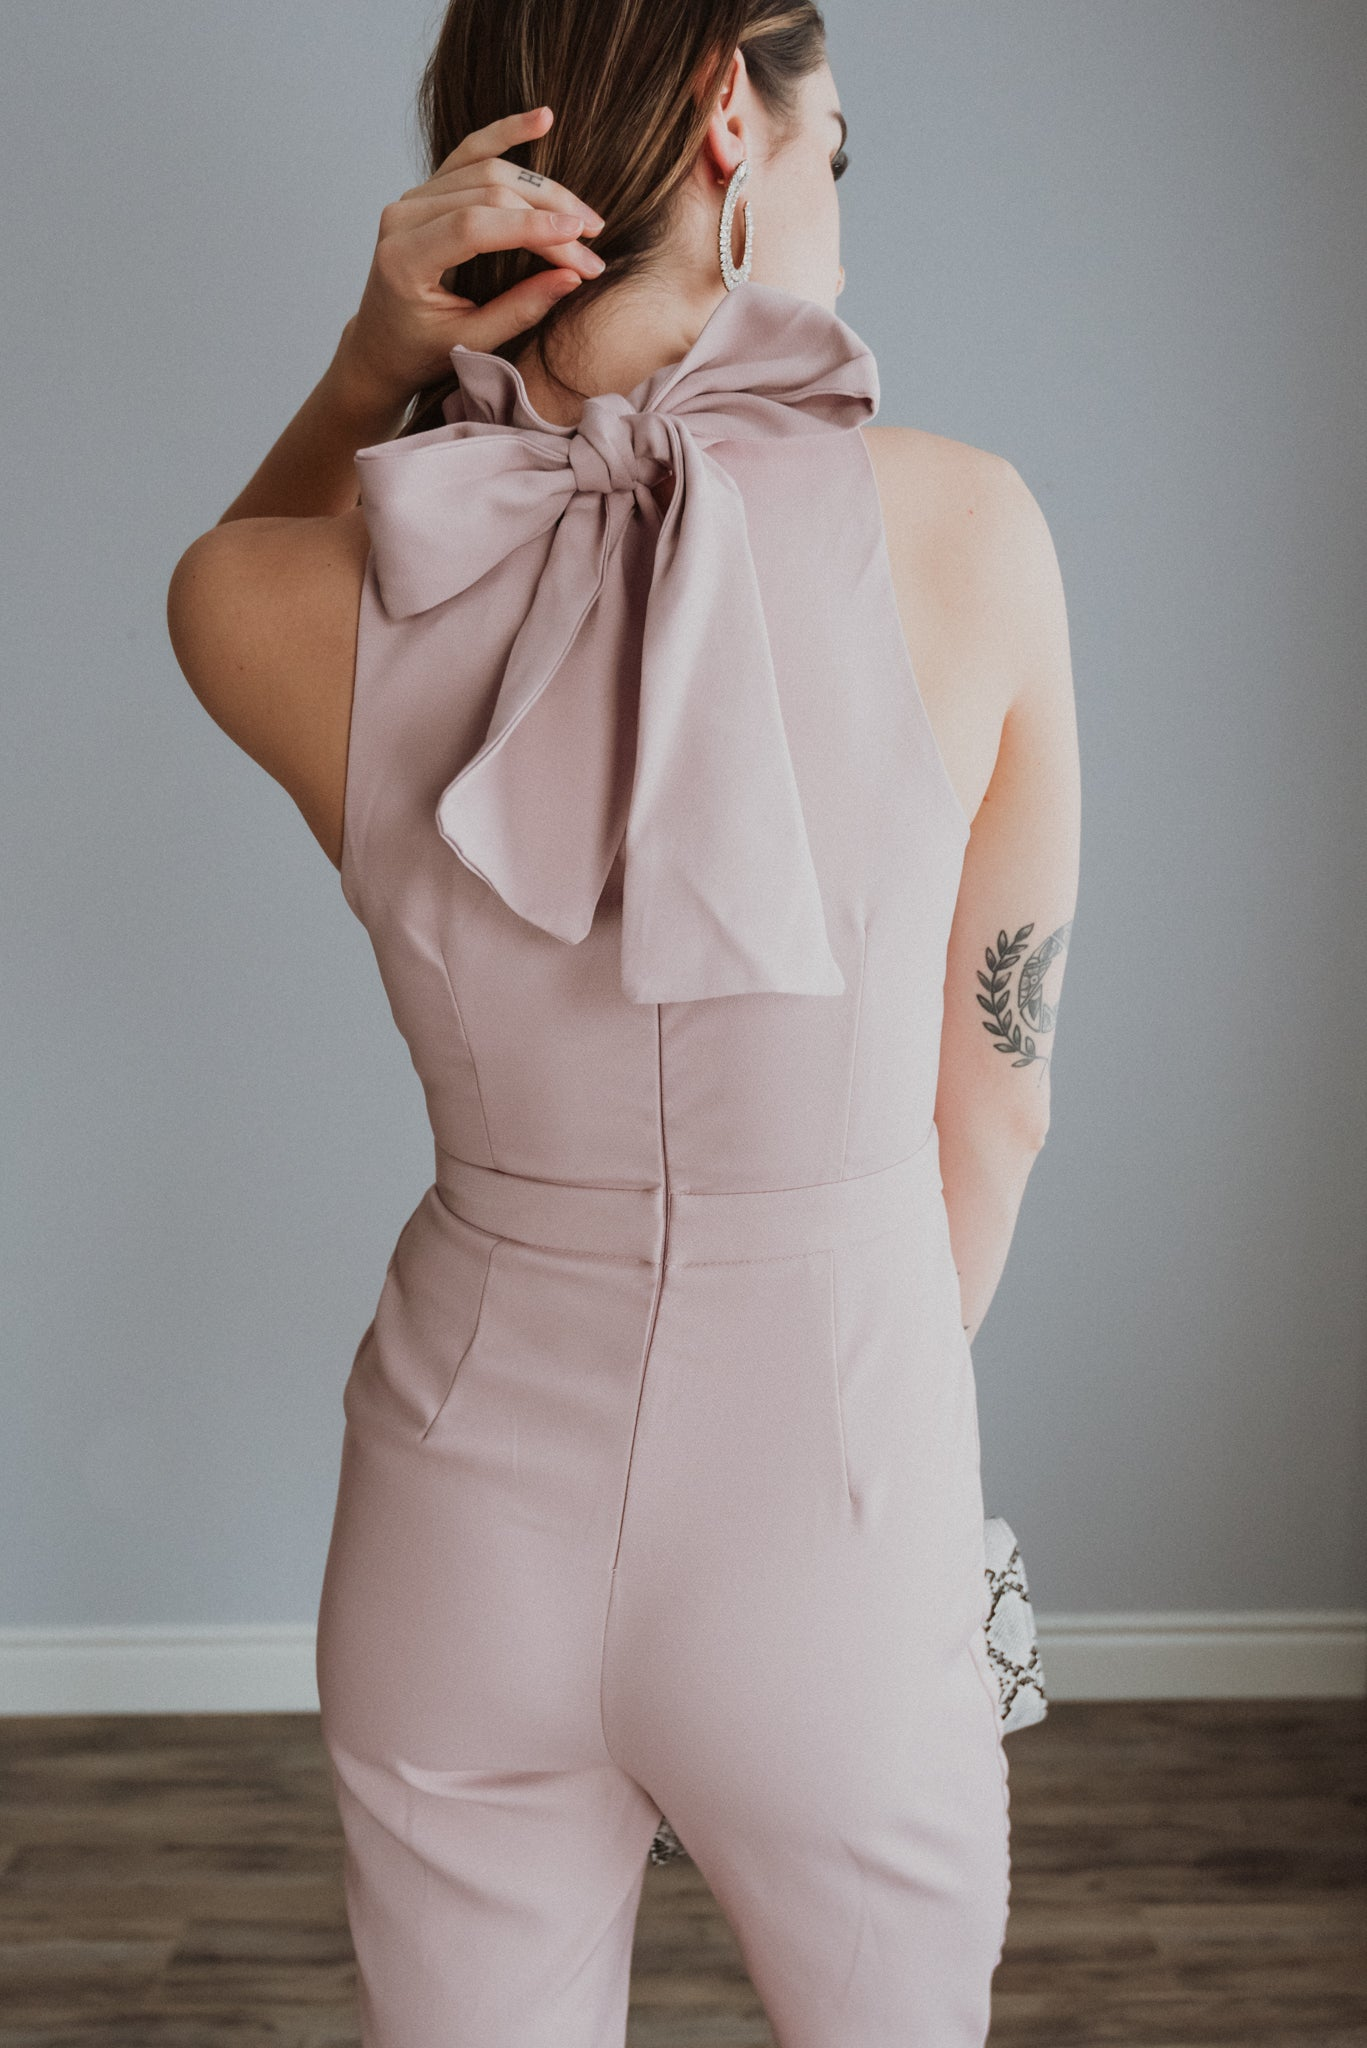 xSOLD OUTx Like A Charm Jumpsuit in Pale Pink